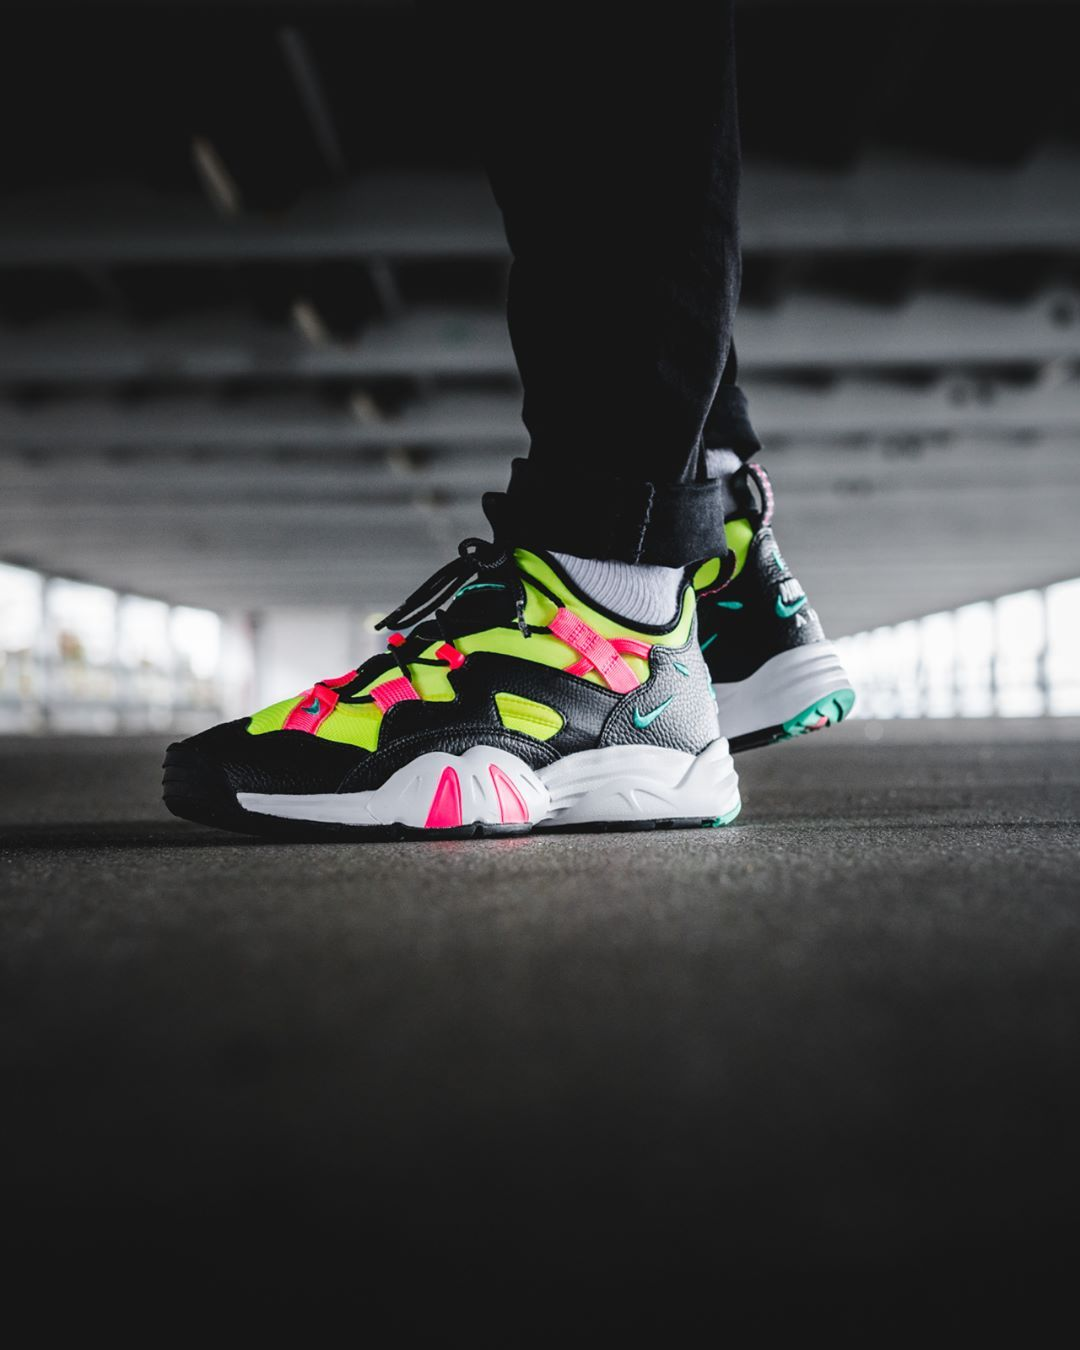 b7fafc1ce74 This Nike Air Scream (110€) celebrates its revival in 2018. Initially  launched in 1995